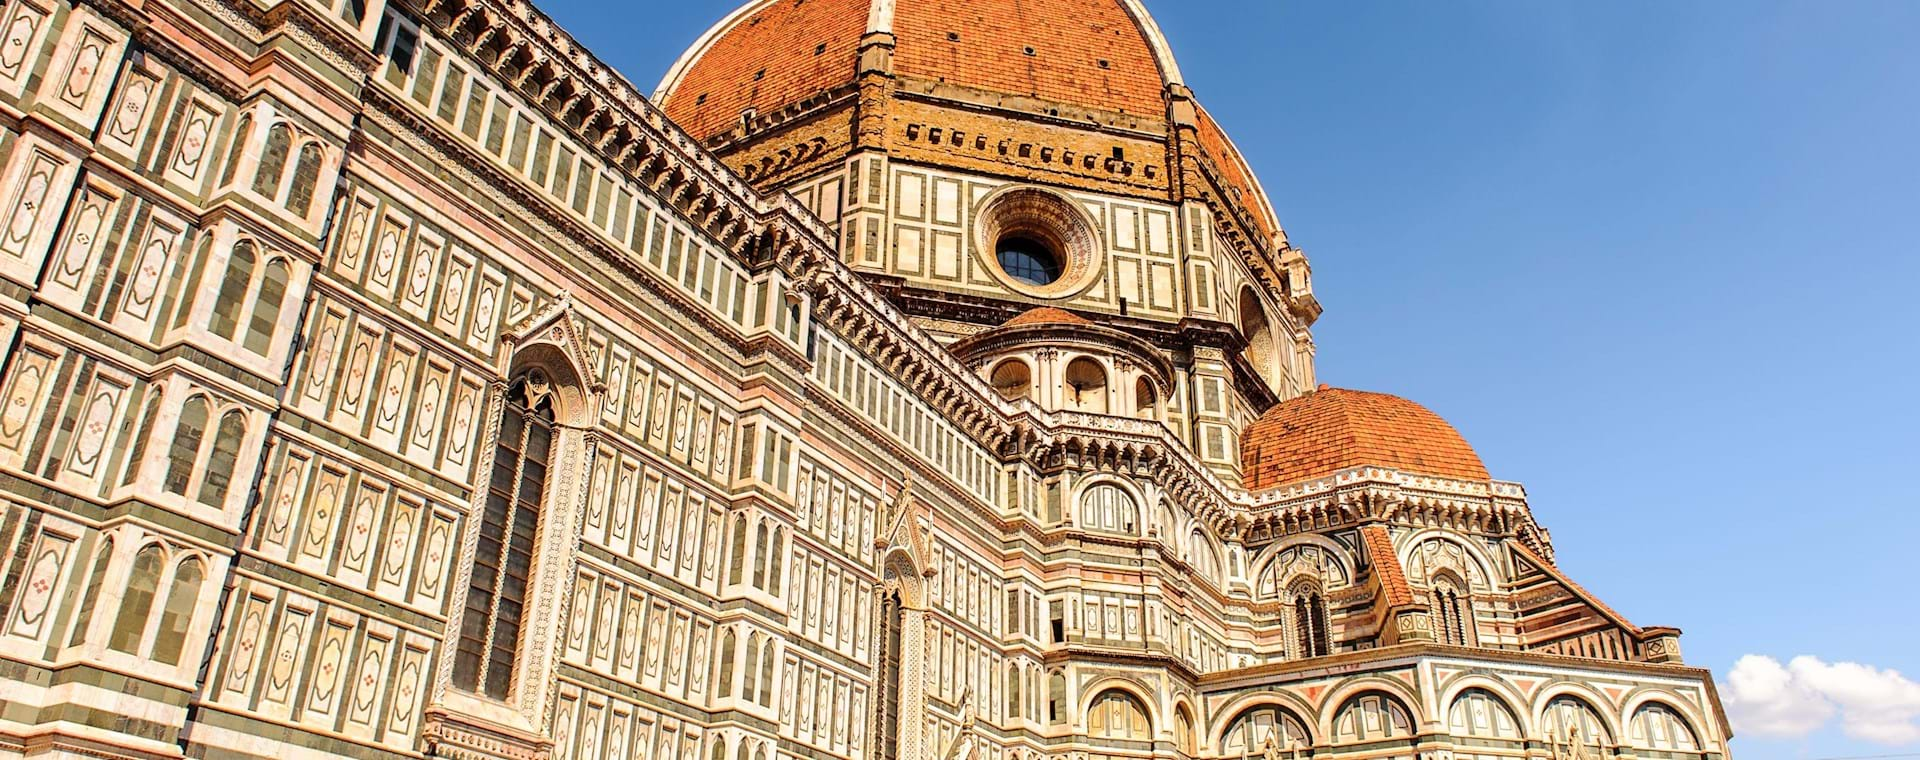 Private Best of Florence Tour with David & the Duomo